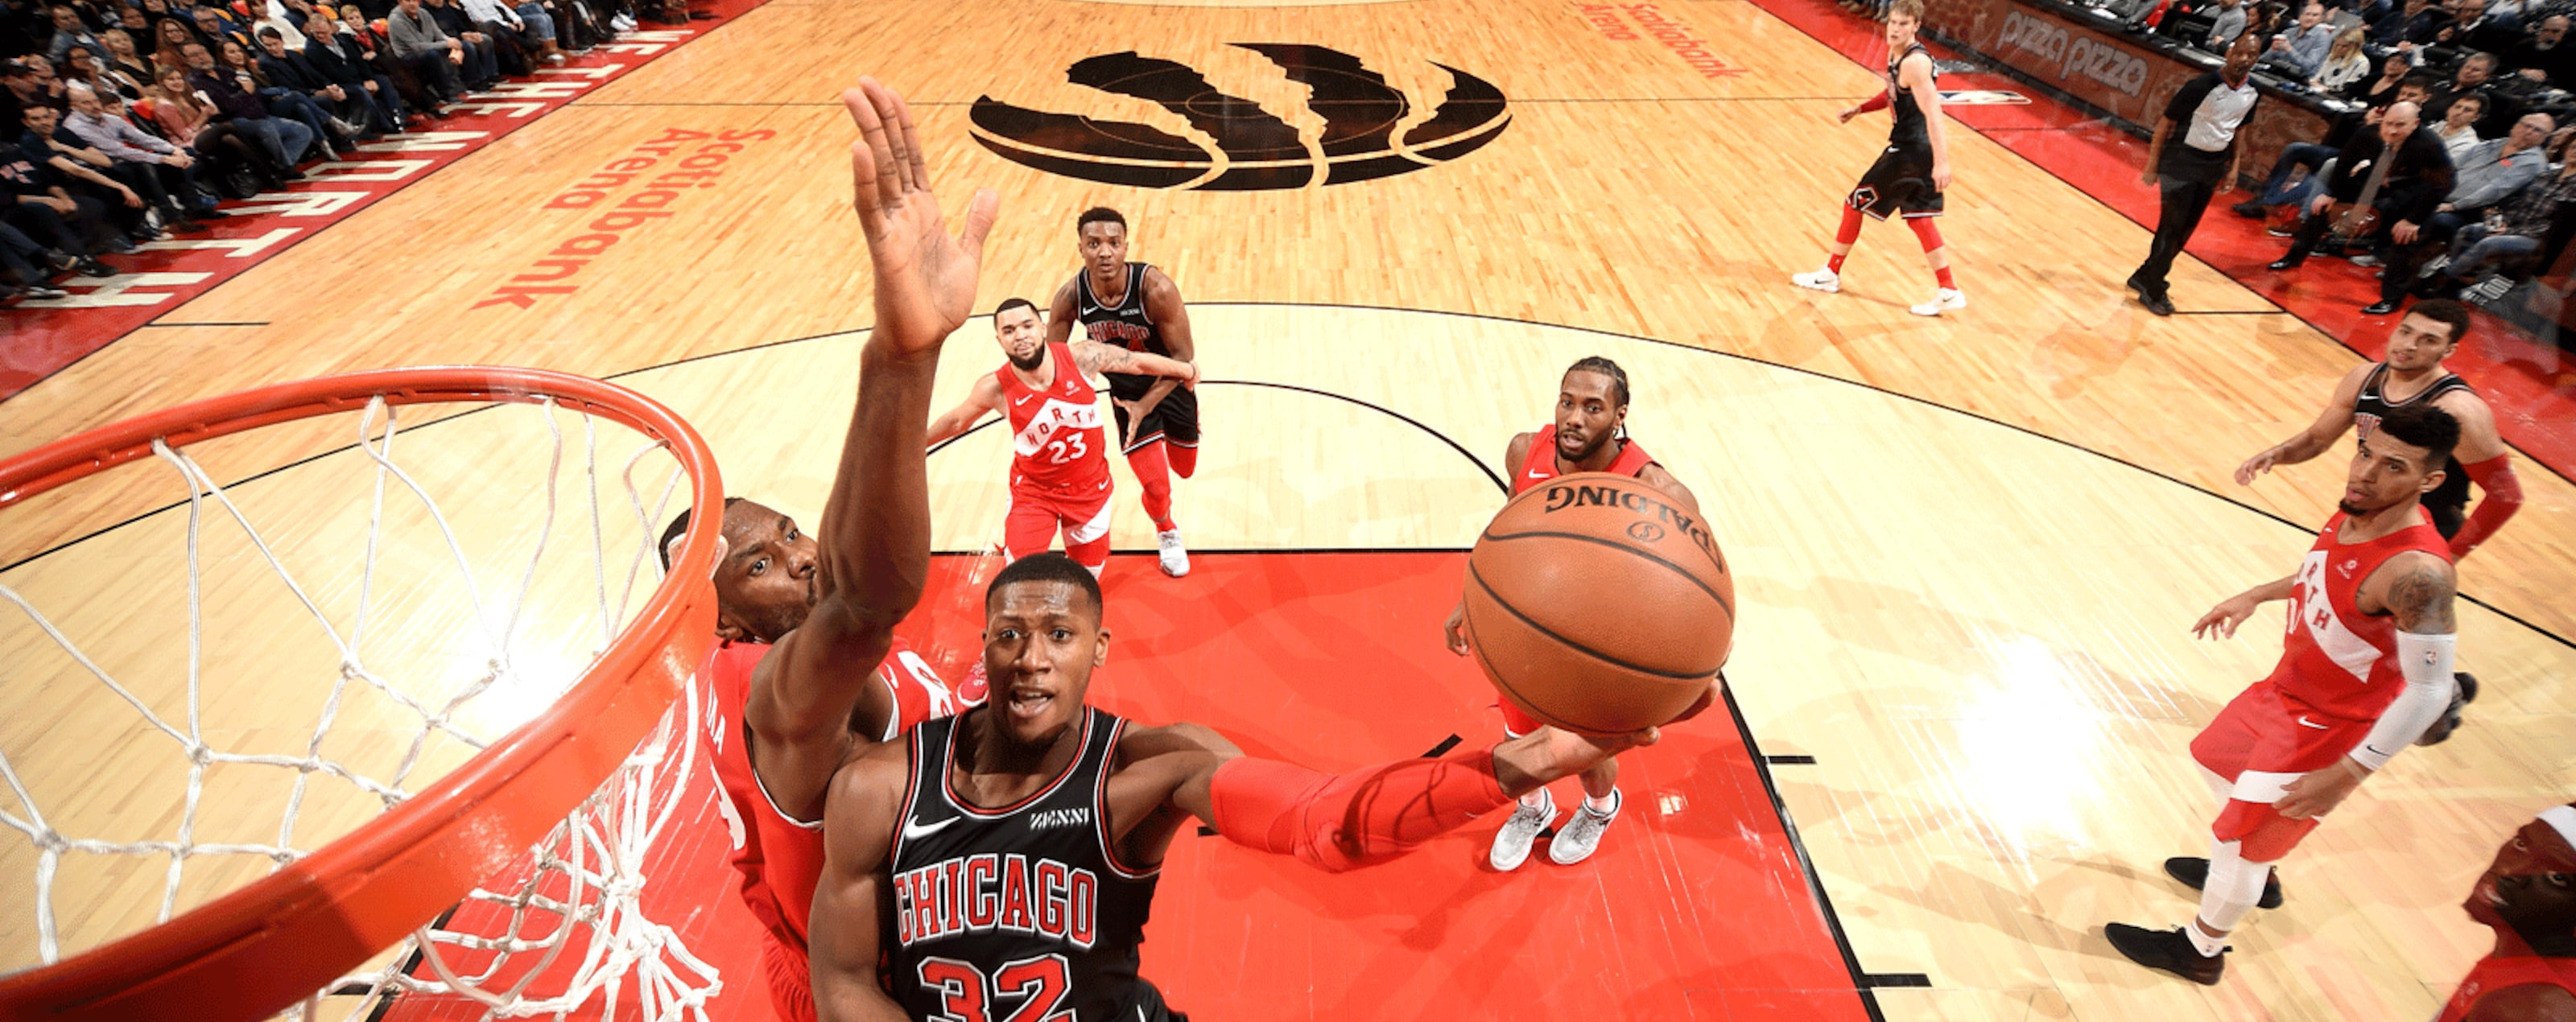 Kris Dunn #32 of the Chicago Bulls shoots the ball against the Toronto Raptors on December 30, 2018 at the Scotiabank Arena in Toronto, Ontario, Canada.